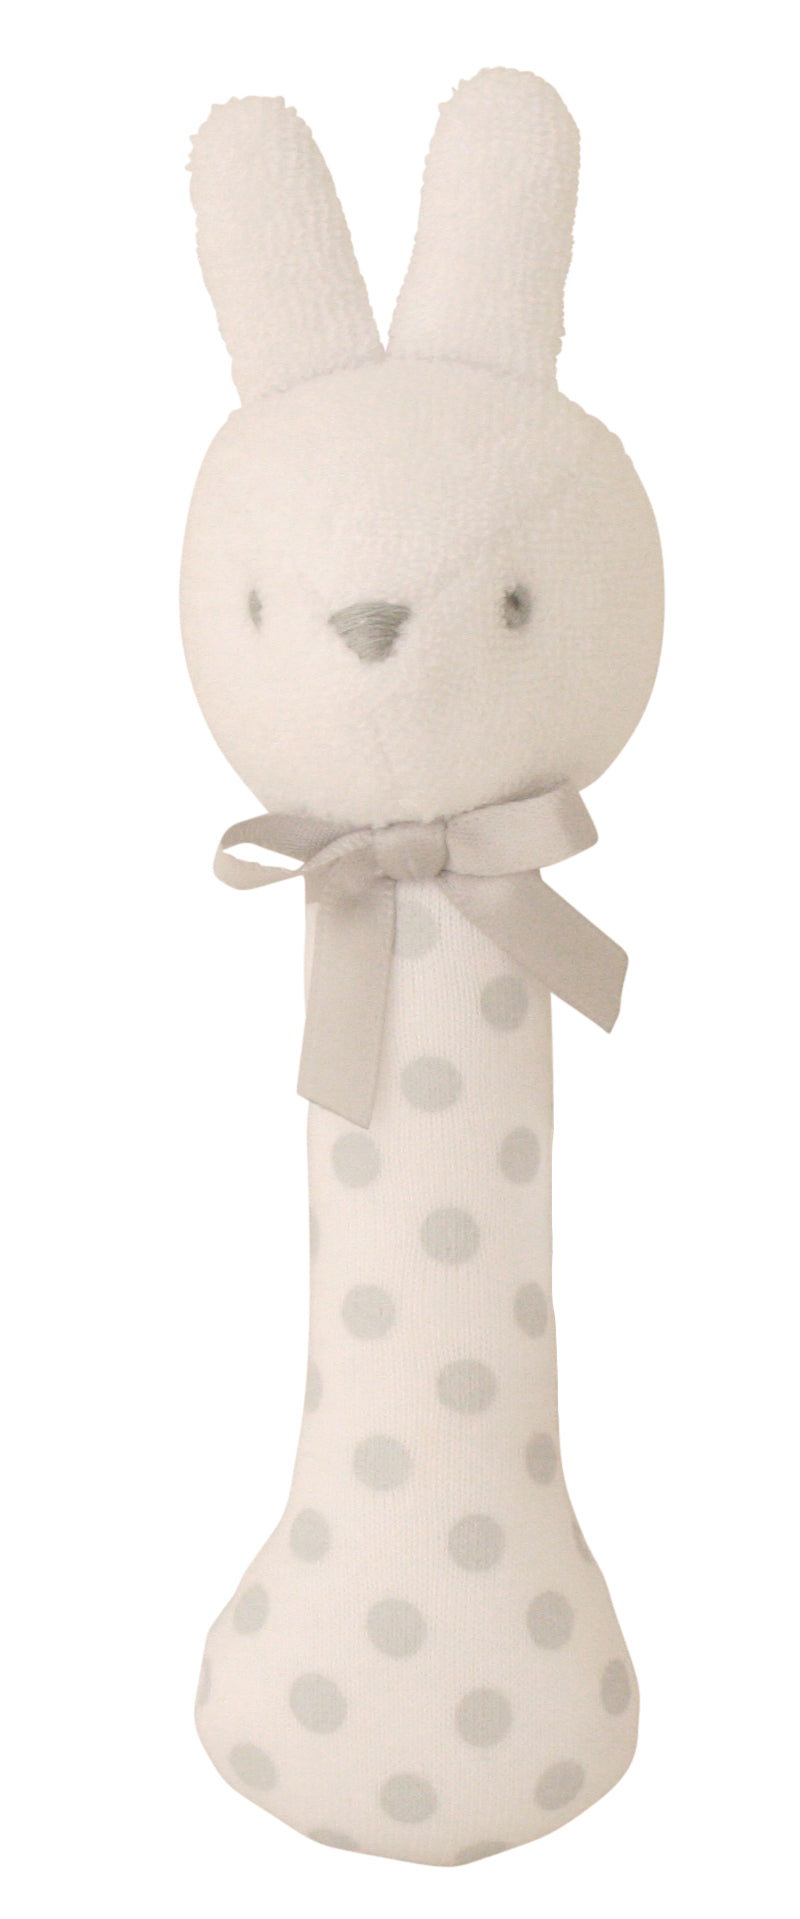 Alimrose Coco Bunny Rattle - White and Grey